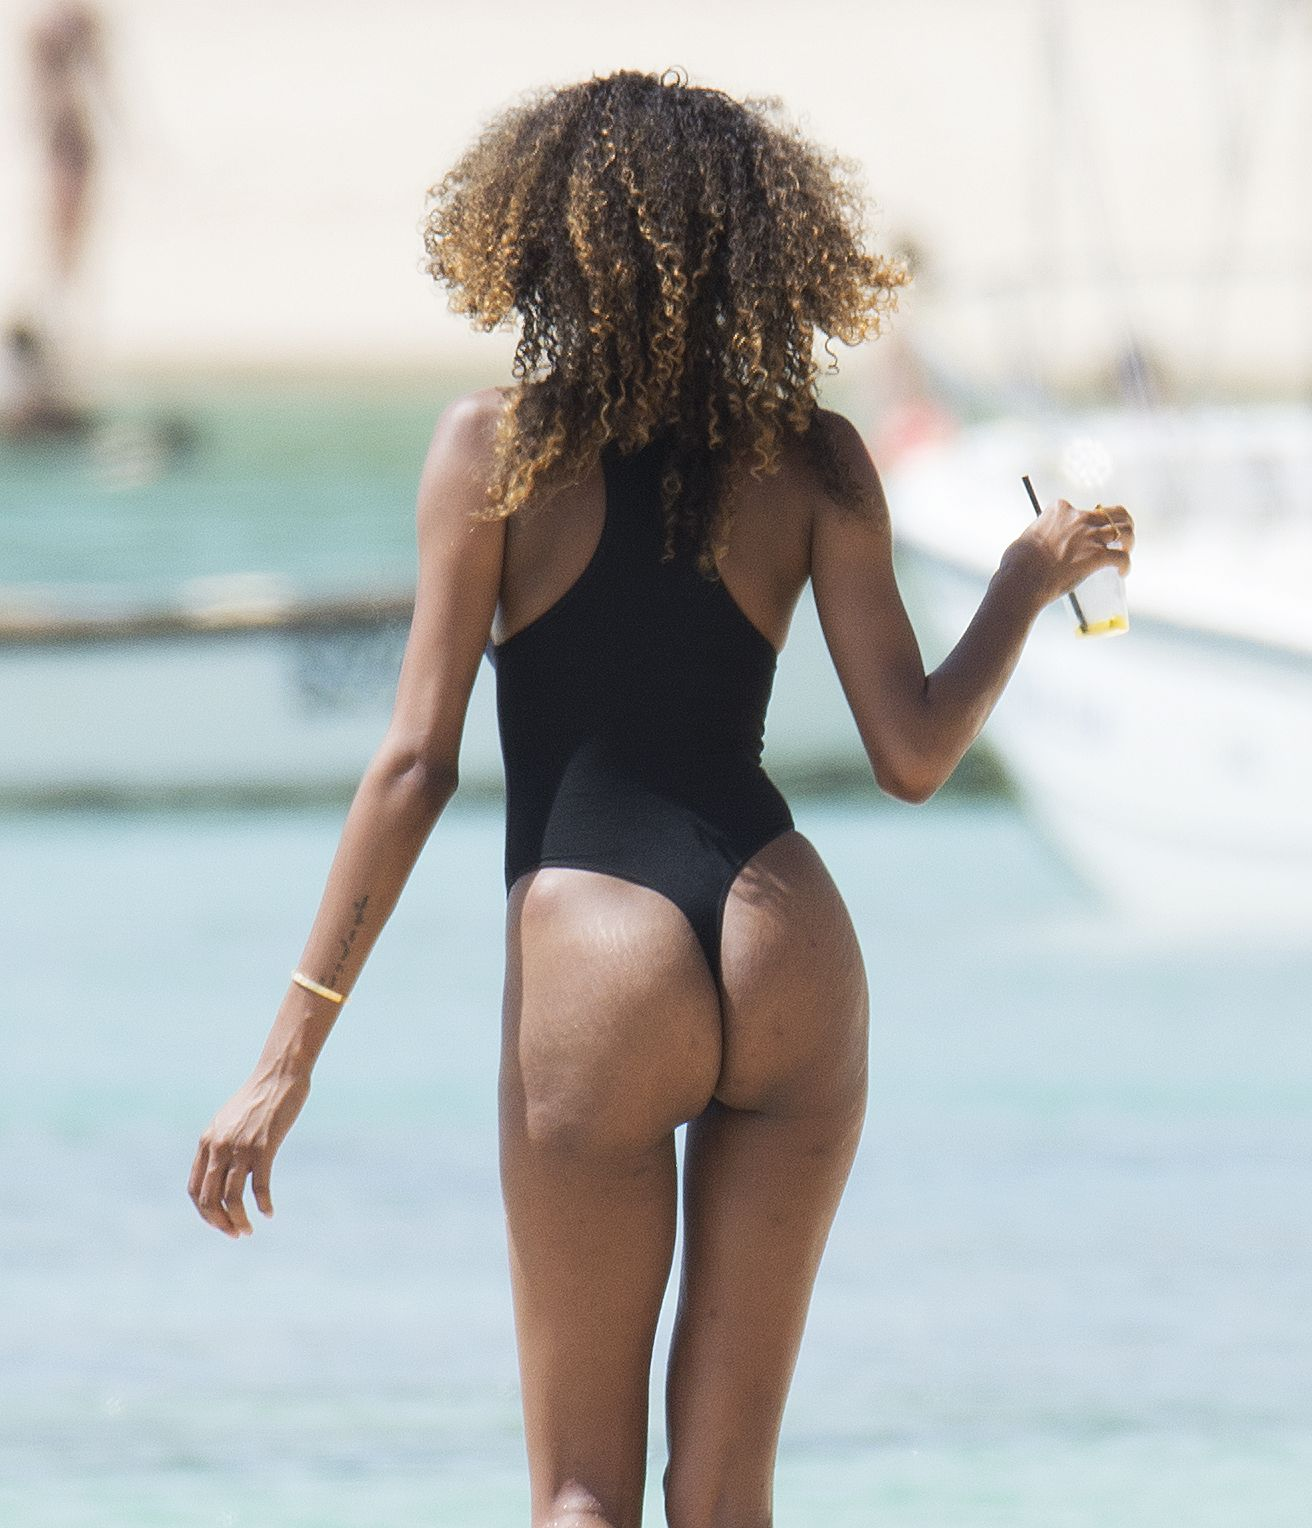 Jourdan Dunn Swimsuit pics